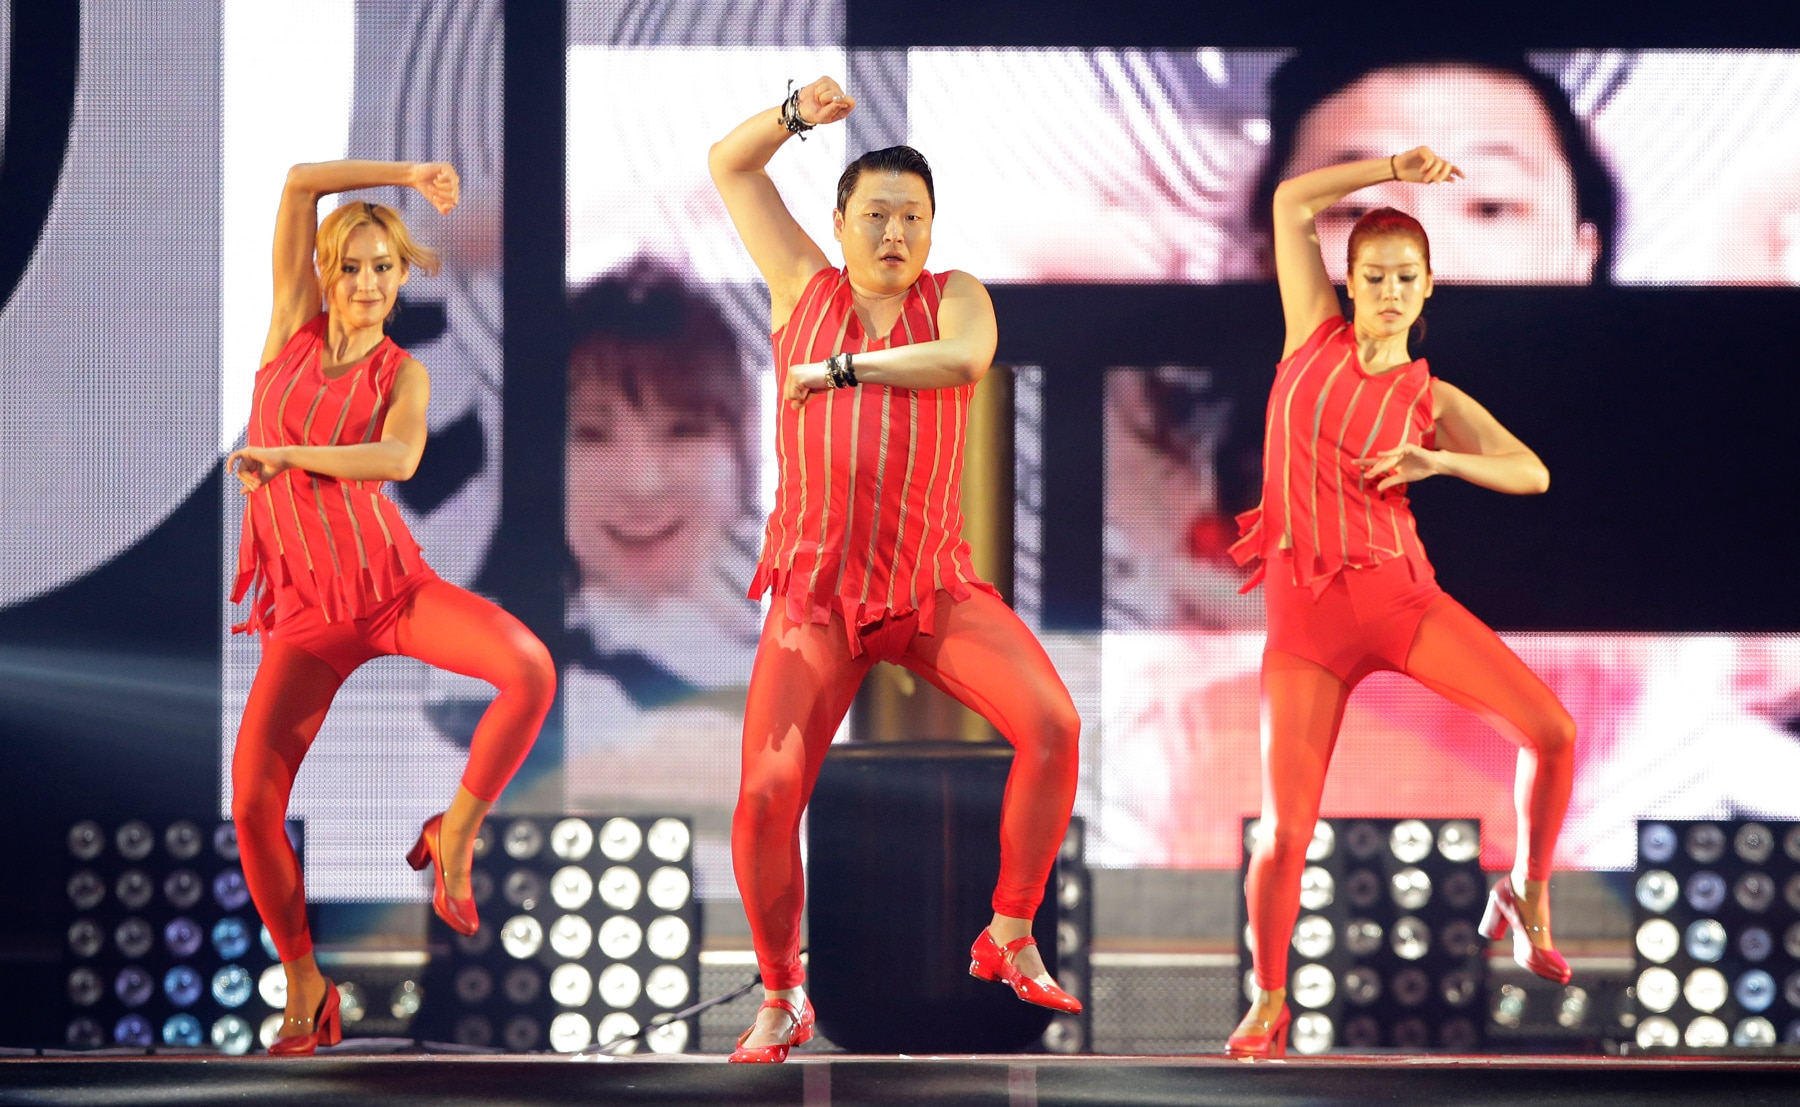 Psy and two women dancing (© AP Images)